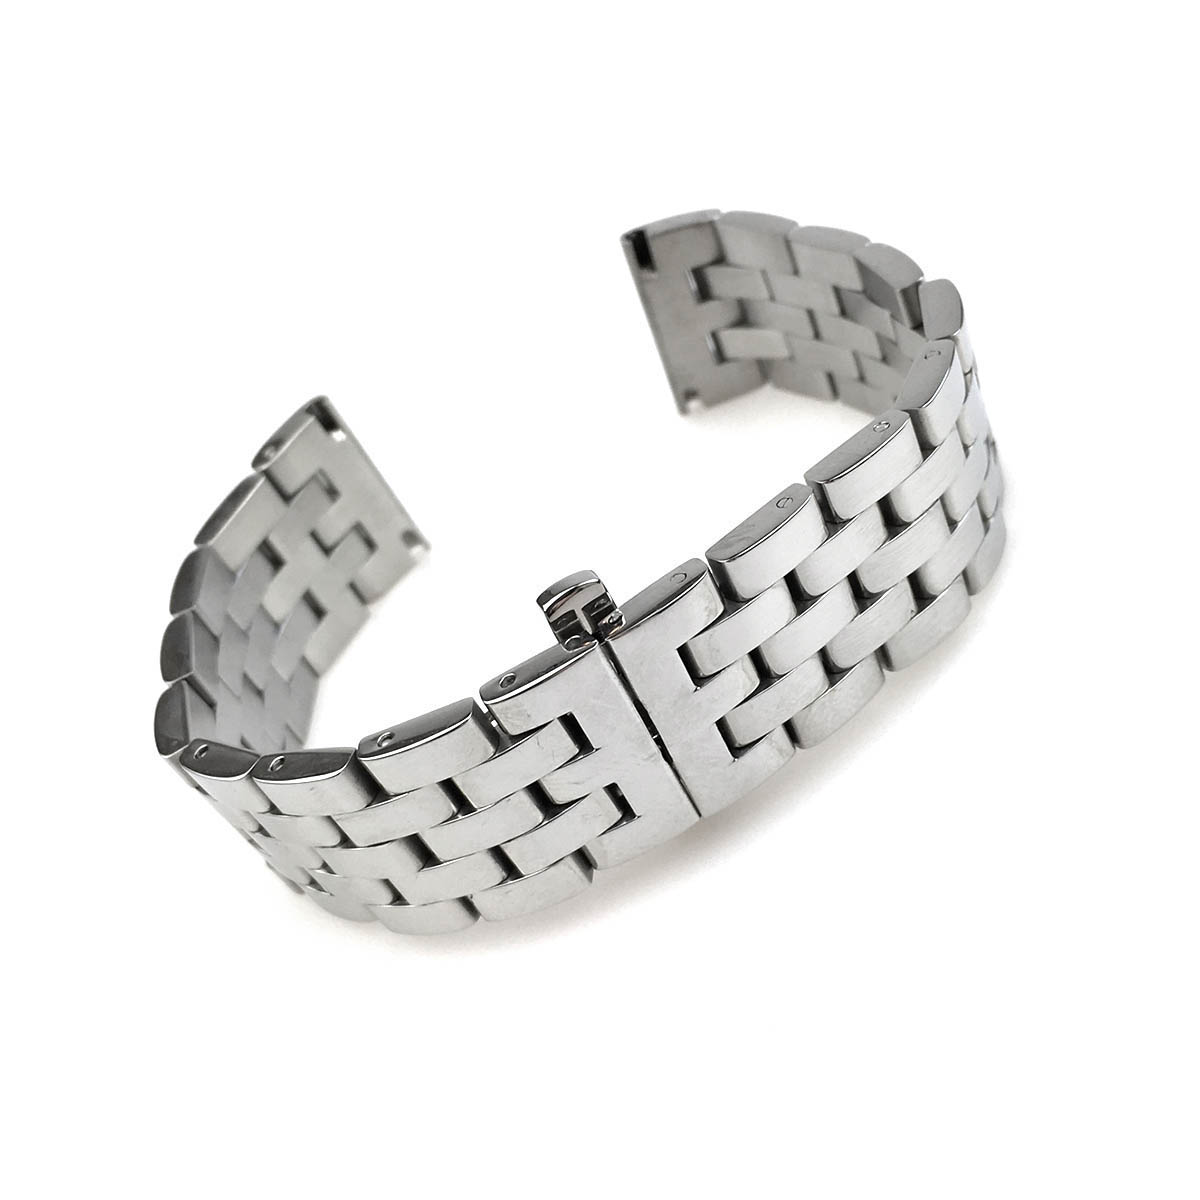 Watch belt watch band replacement strap fitted general-purpose stainless steel belt width 17 mm/18 mm/20 mm/22 / mm applications: ZENITH Zenith and Jaeger-LeCoultre Jaeger-Lecoultre (buckle) buckle with 532P17Sep16